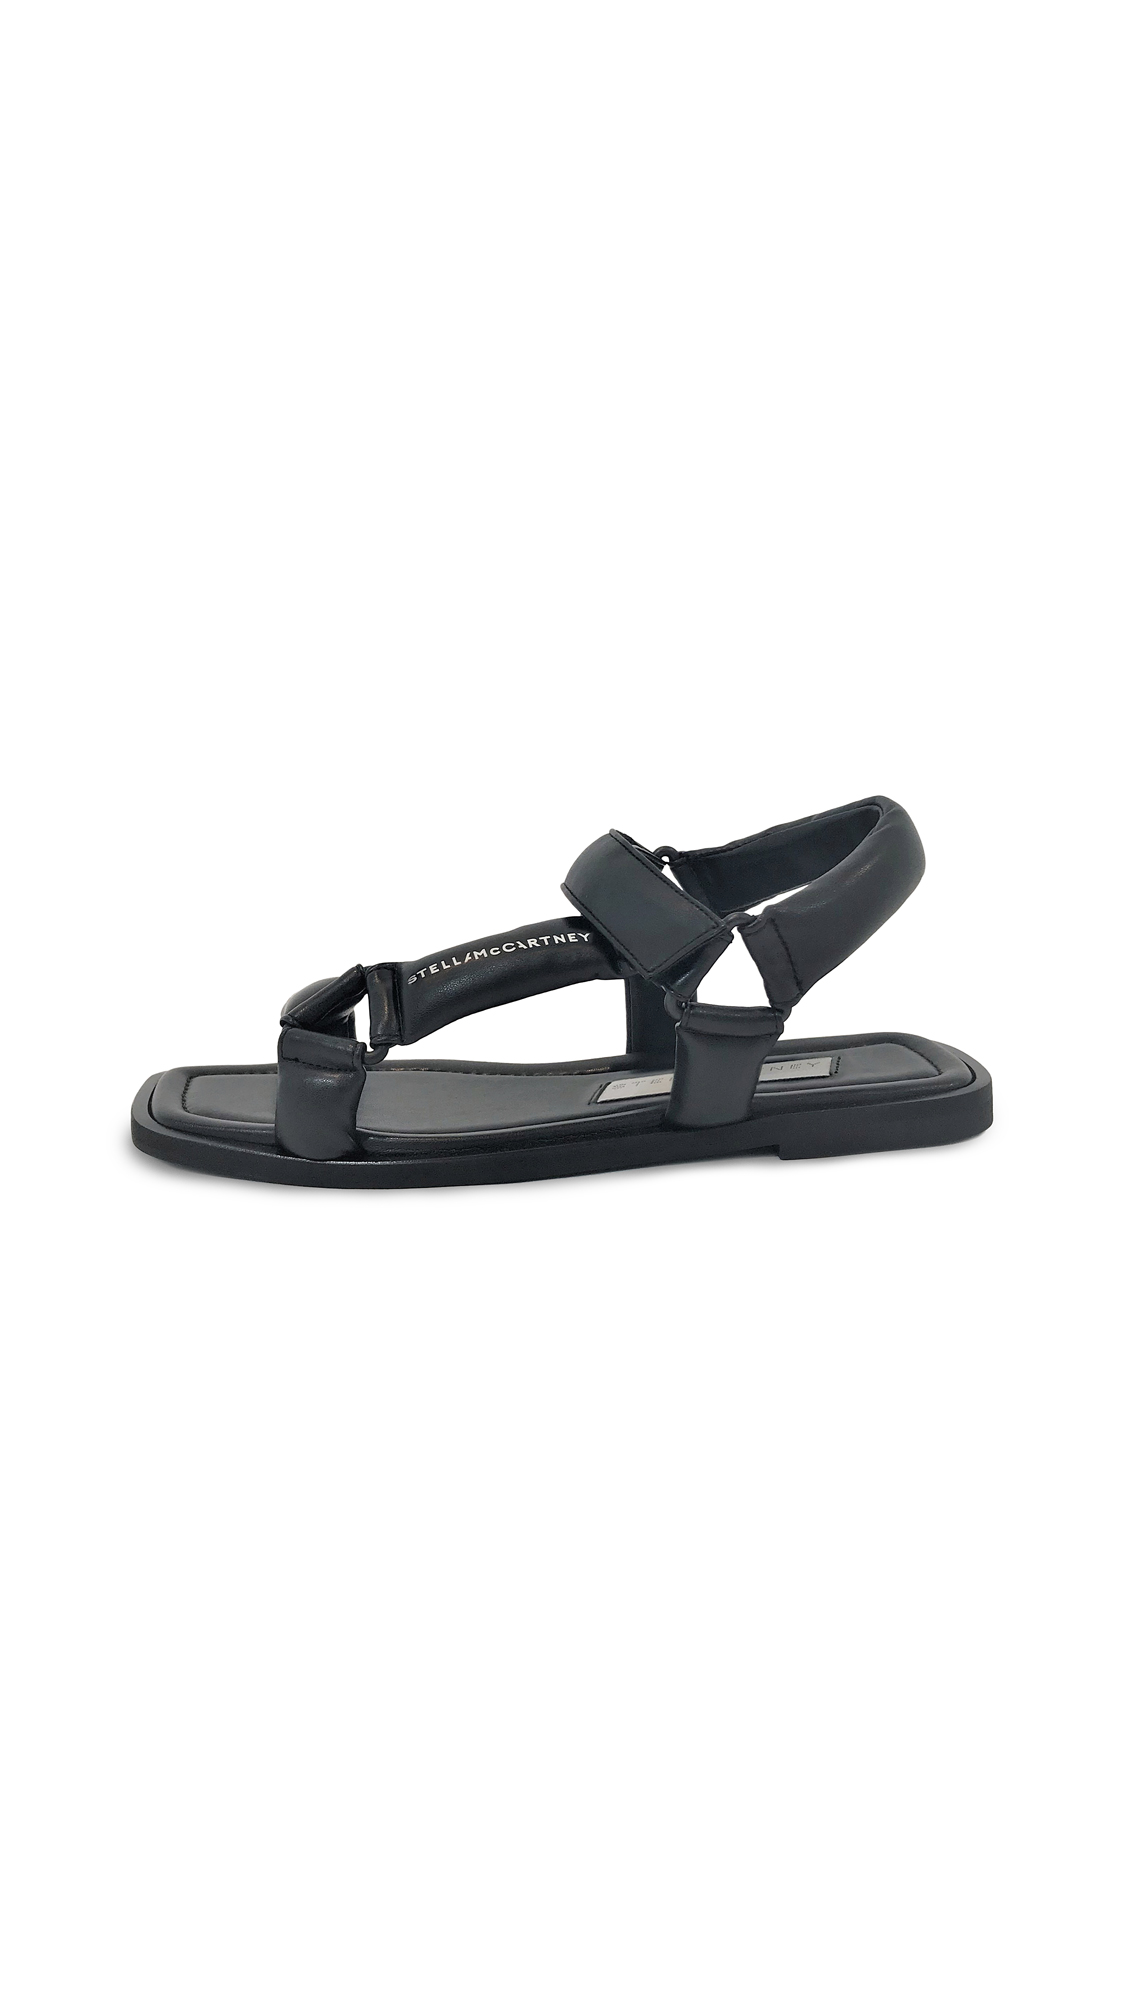 Buy Stella McCartney Hemera Sandals online, shop Stella McCartney